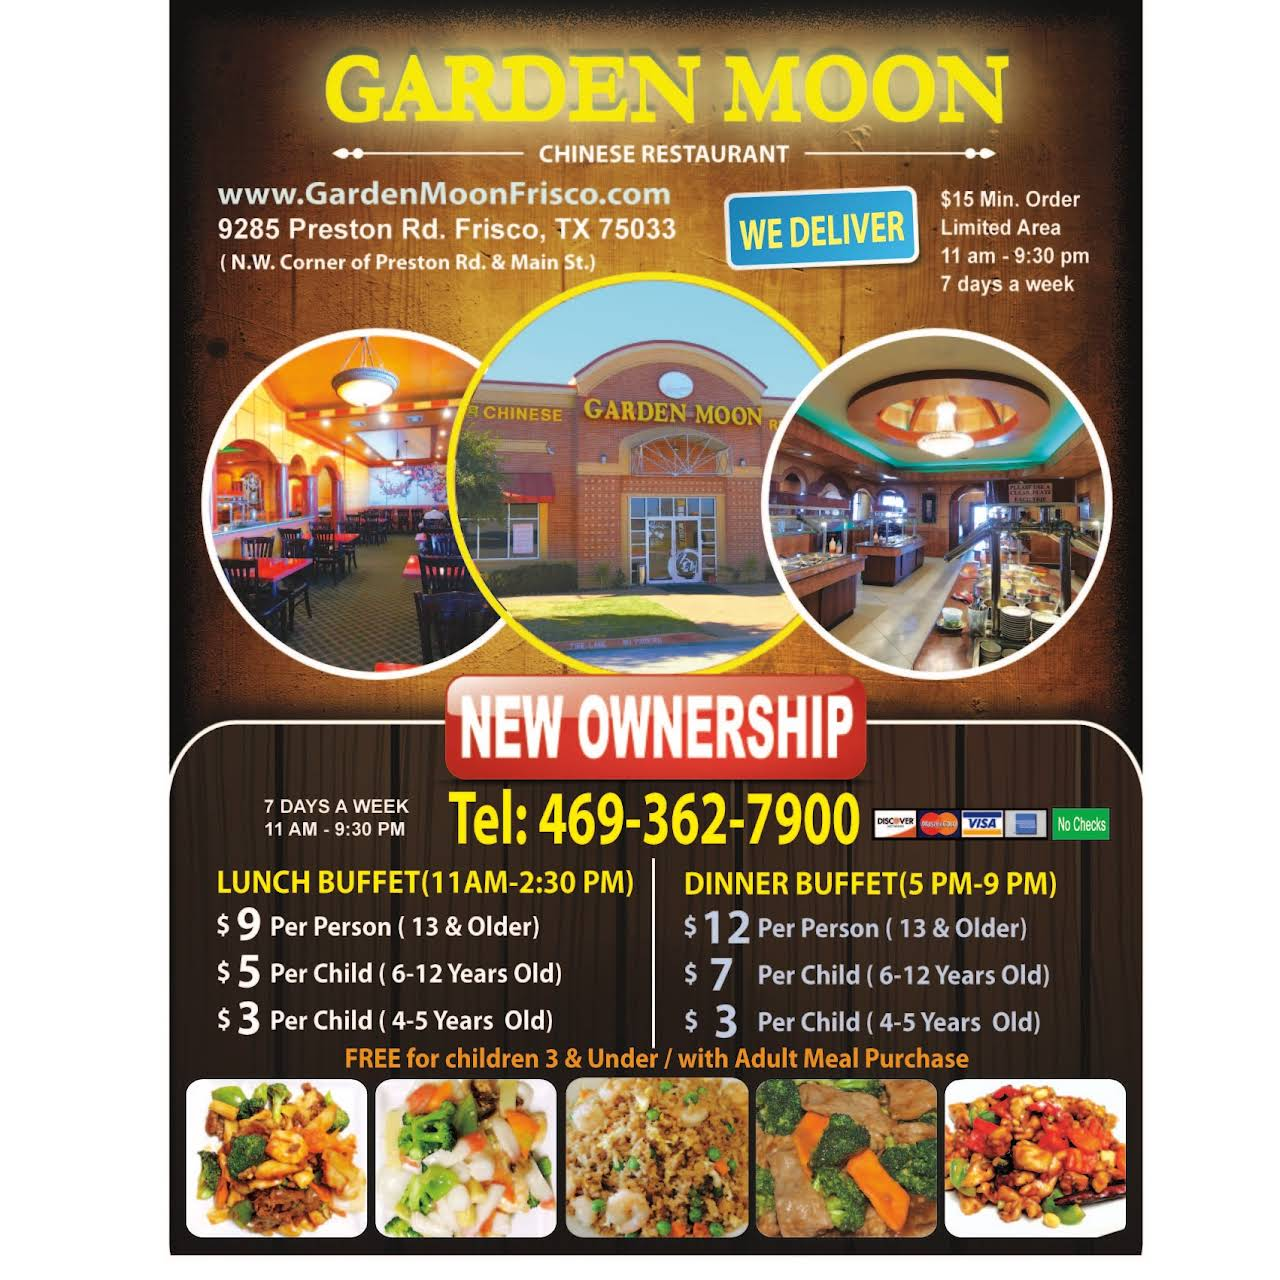 Posted On Dec 4 2018 Garden Moon Chinese Restaurant